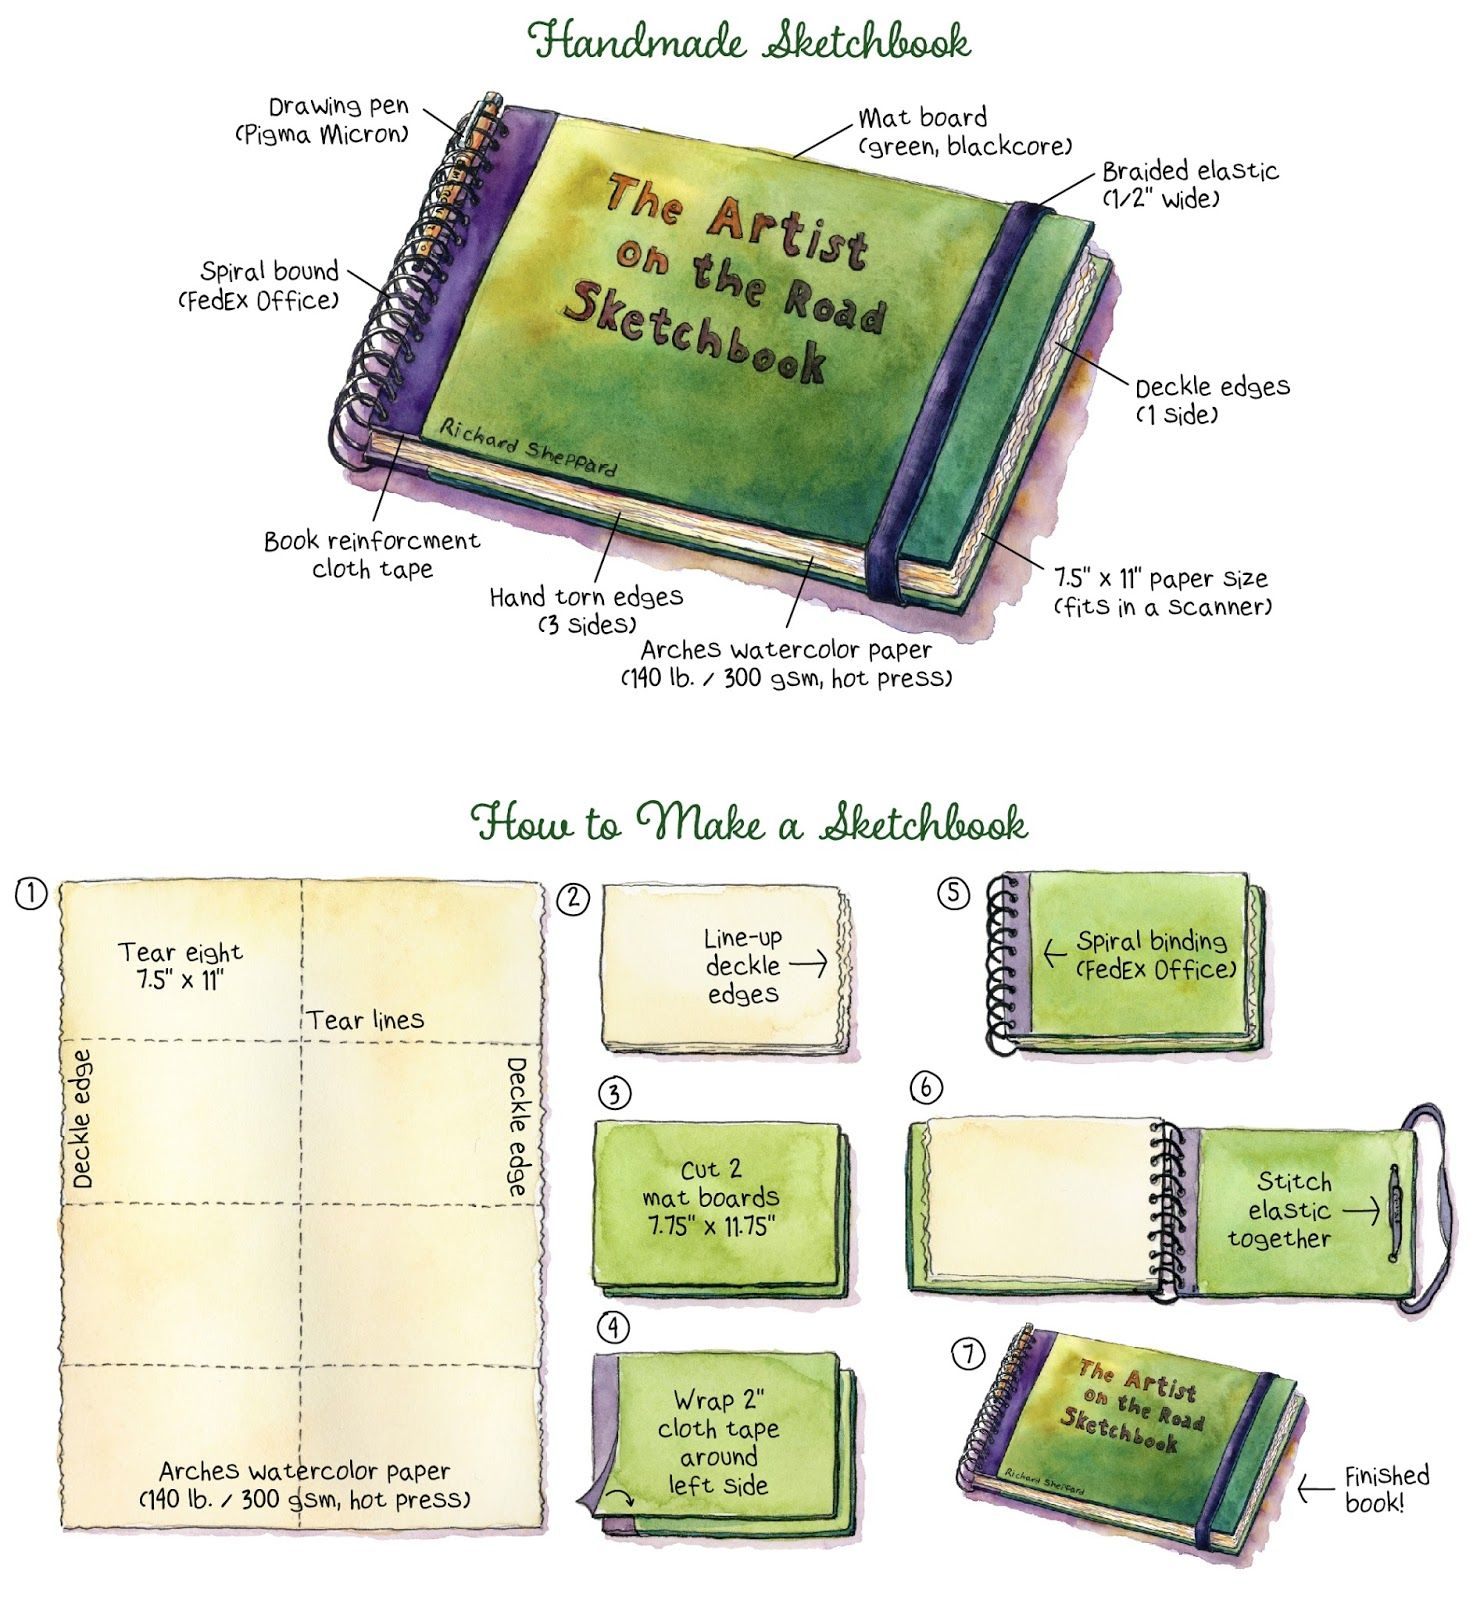 How To Make Your Very Own Sketchbook Sketch Book Handmade